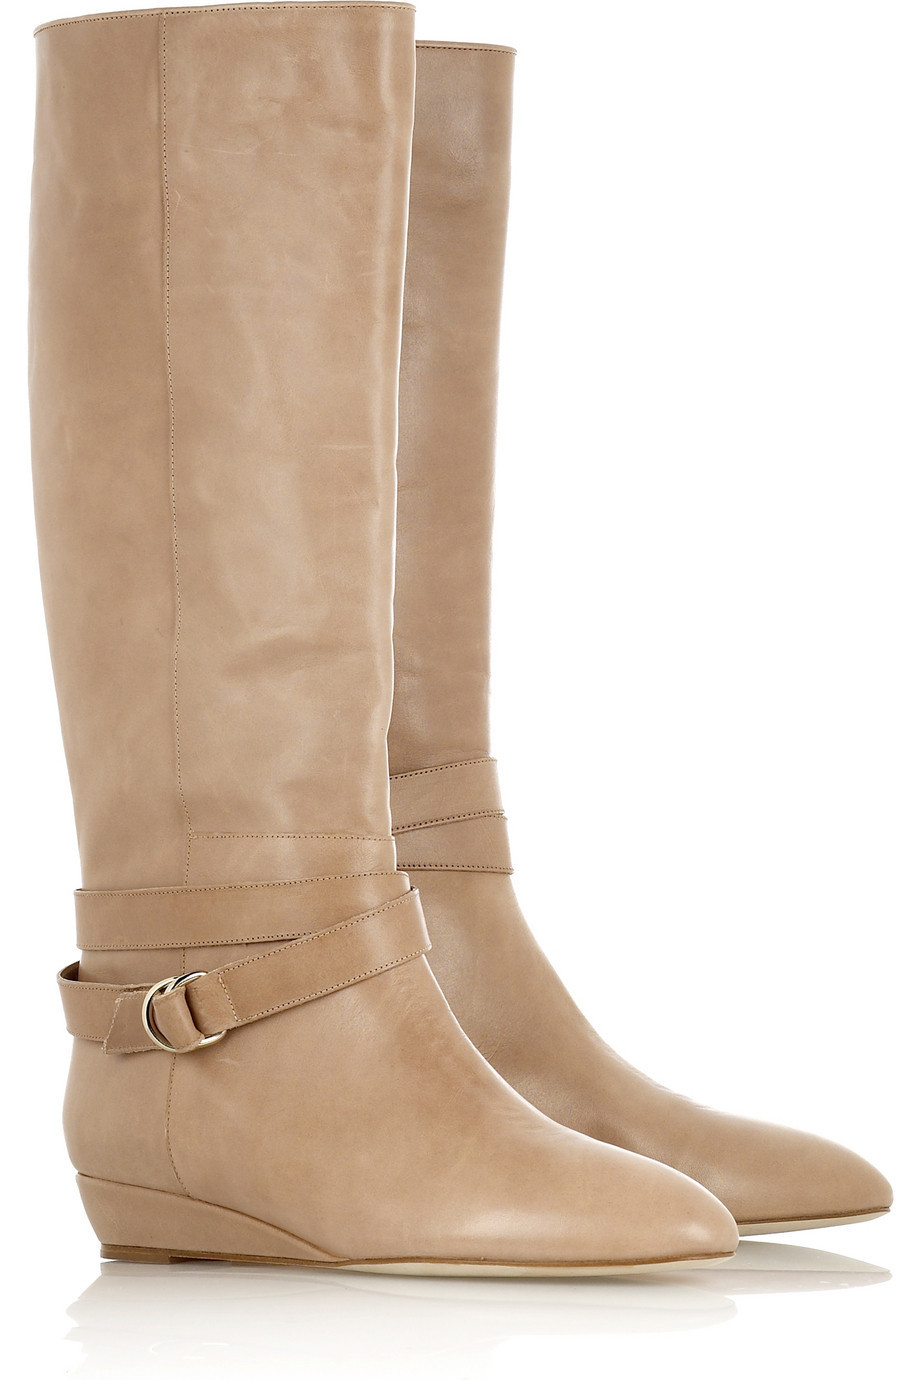 Loeffler Randall Leather riding boots | NET-A-PORTER.COM from net-a-porter.com